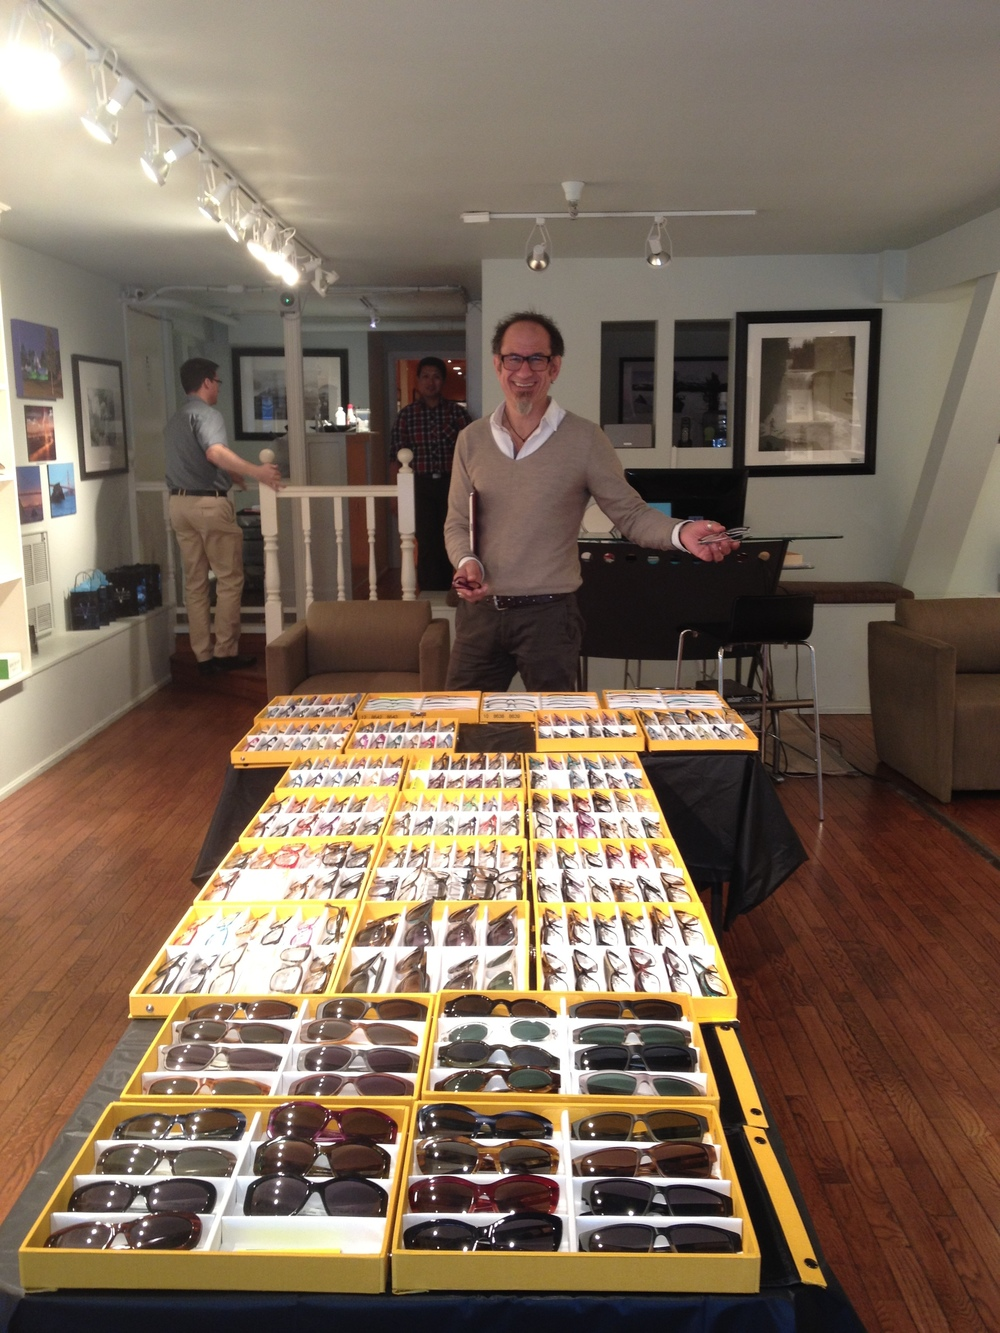 Claudio from Bevel showing off his Bevel collection.